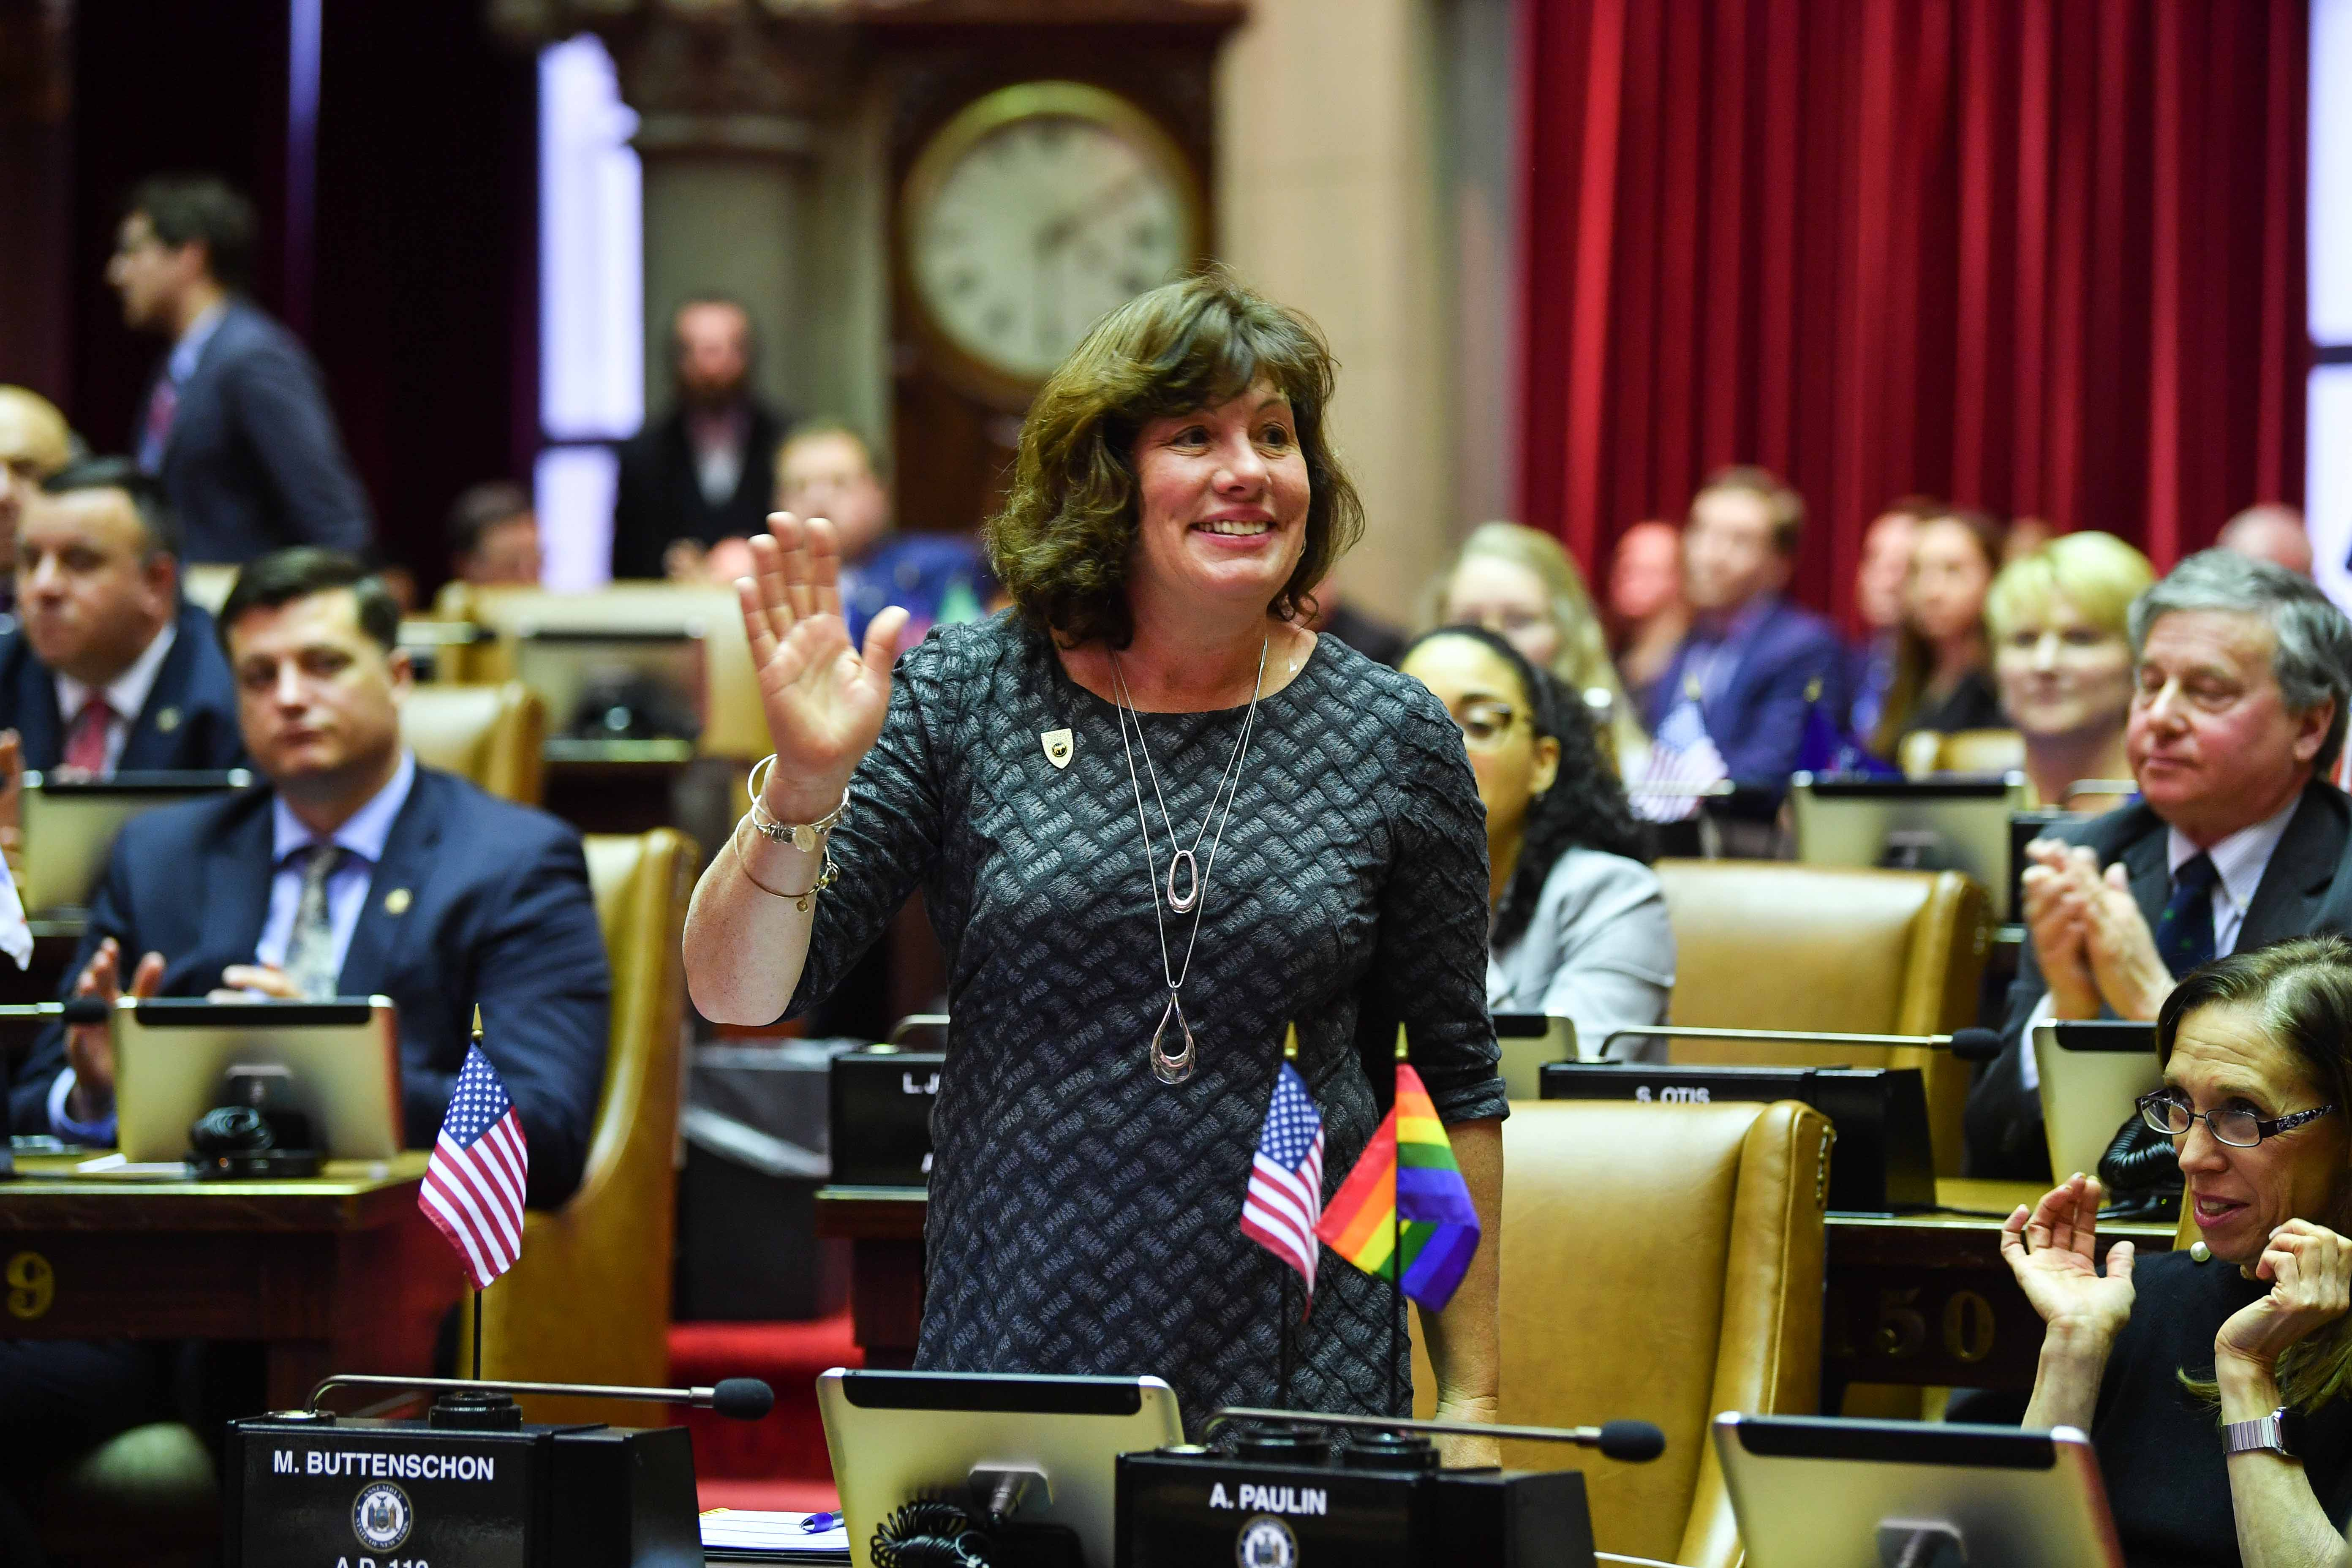 Assemblywoman Buttenschon being introduced on the floor for the first time for the 2019 Legislative Session.